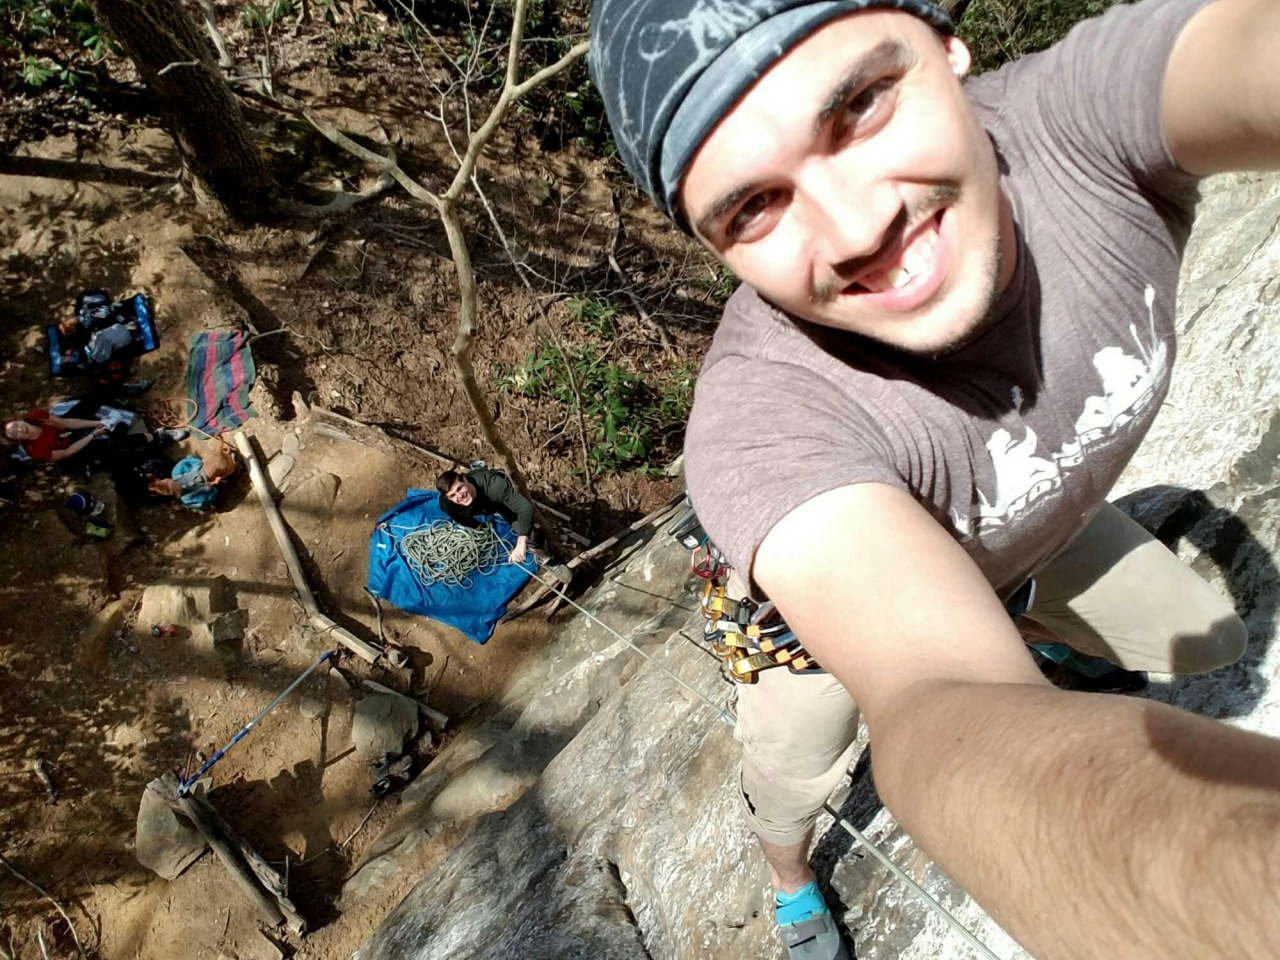 A picture from The Red River Gorge (RRG) by Brandon Riggins